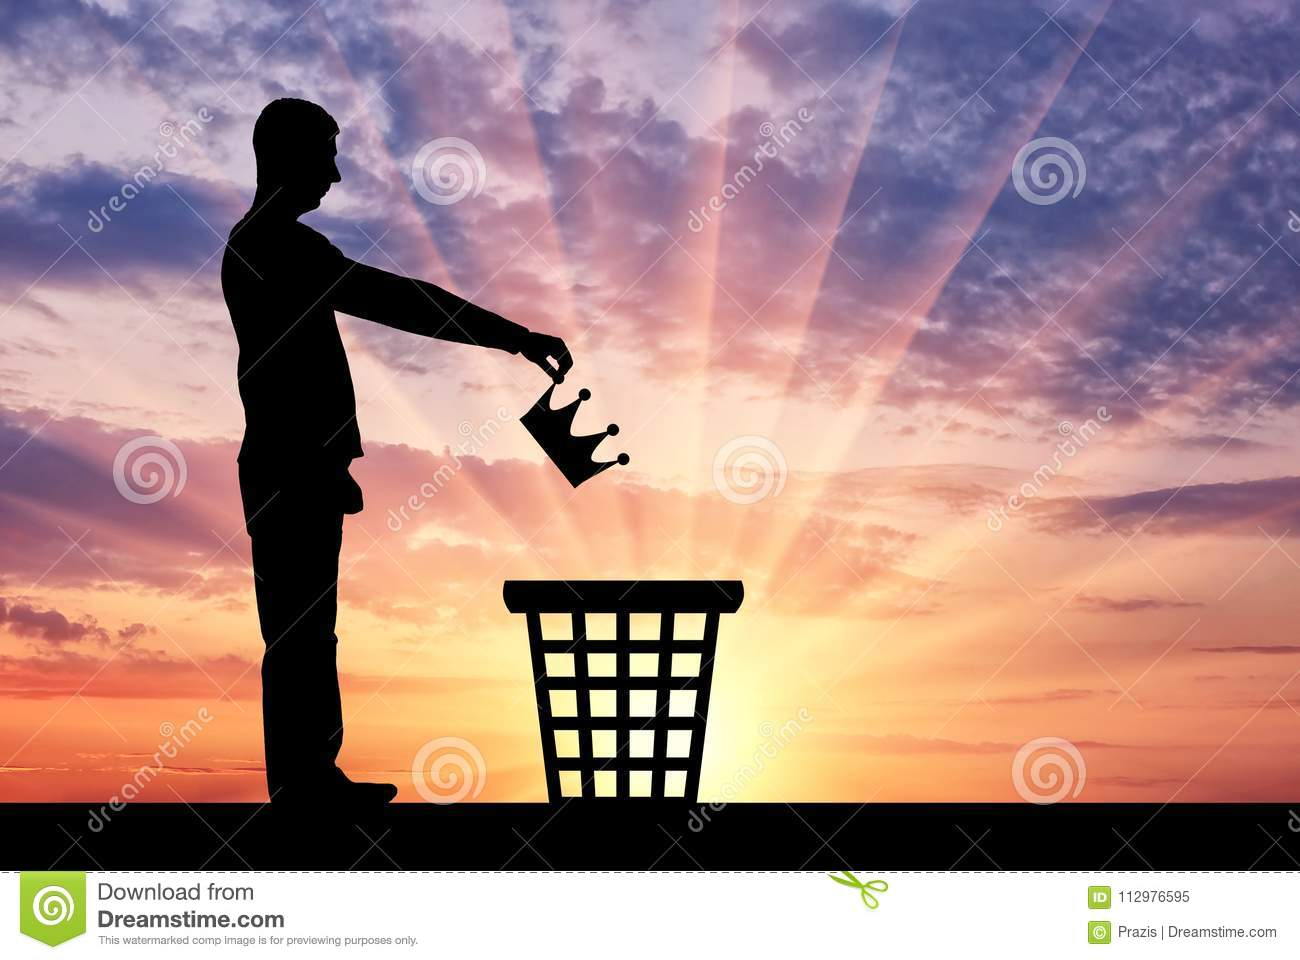 Silhouette of a man throws a crown in the garbage bin